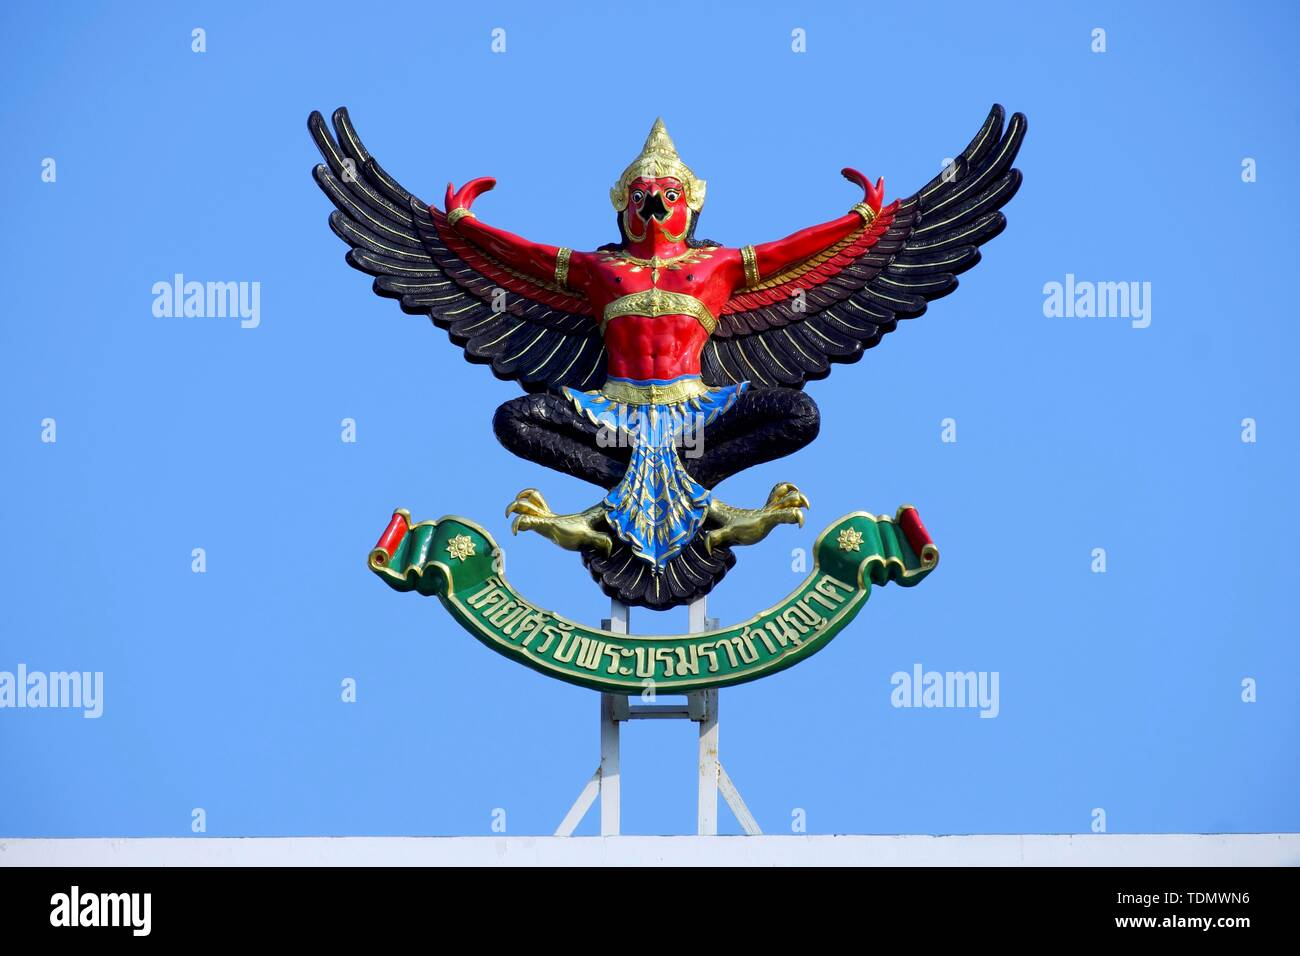 Garuda, Indian mythology, mixed creature of eagle figure and human being, national emblem, national emblem, insignia, in front of blue sky, Thailand - Stock Image